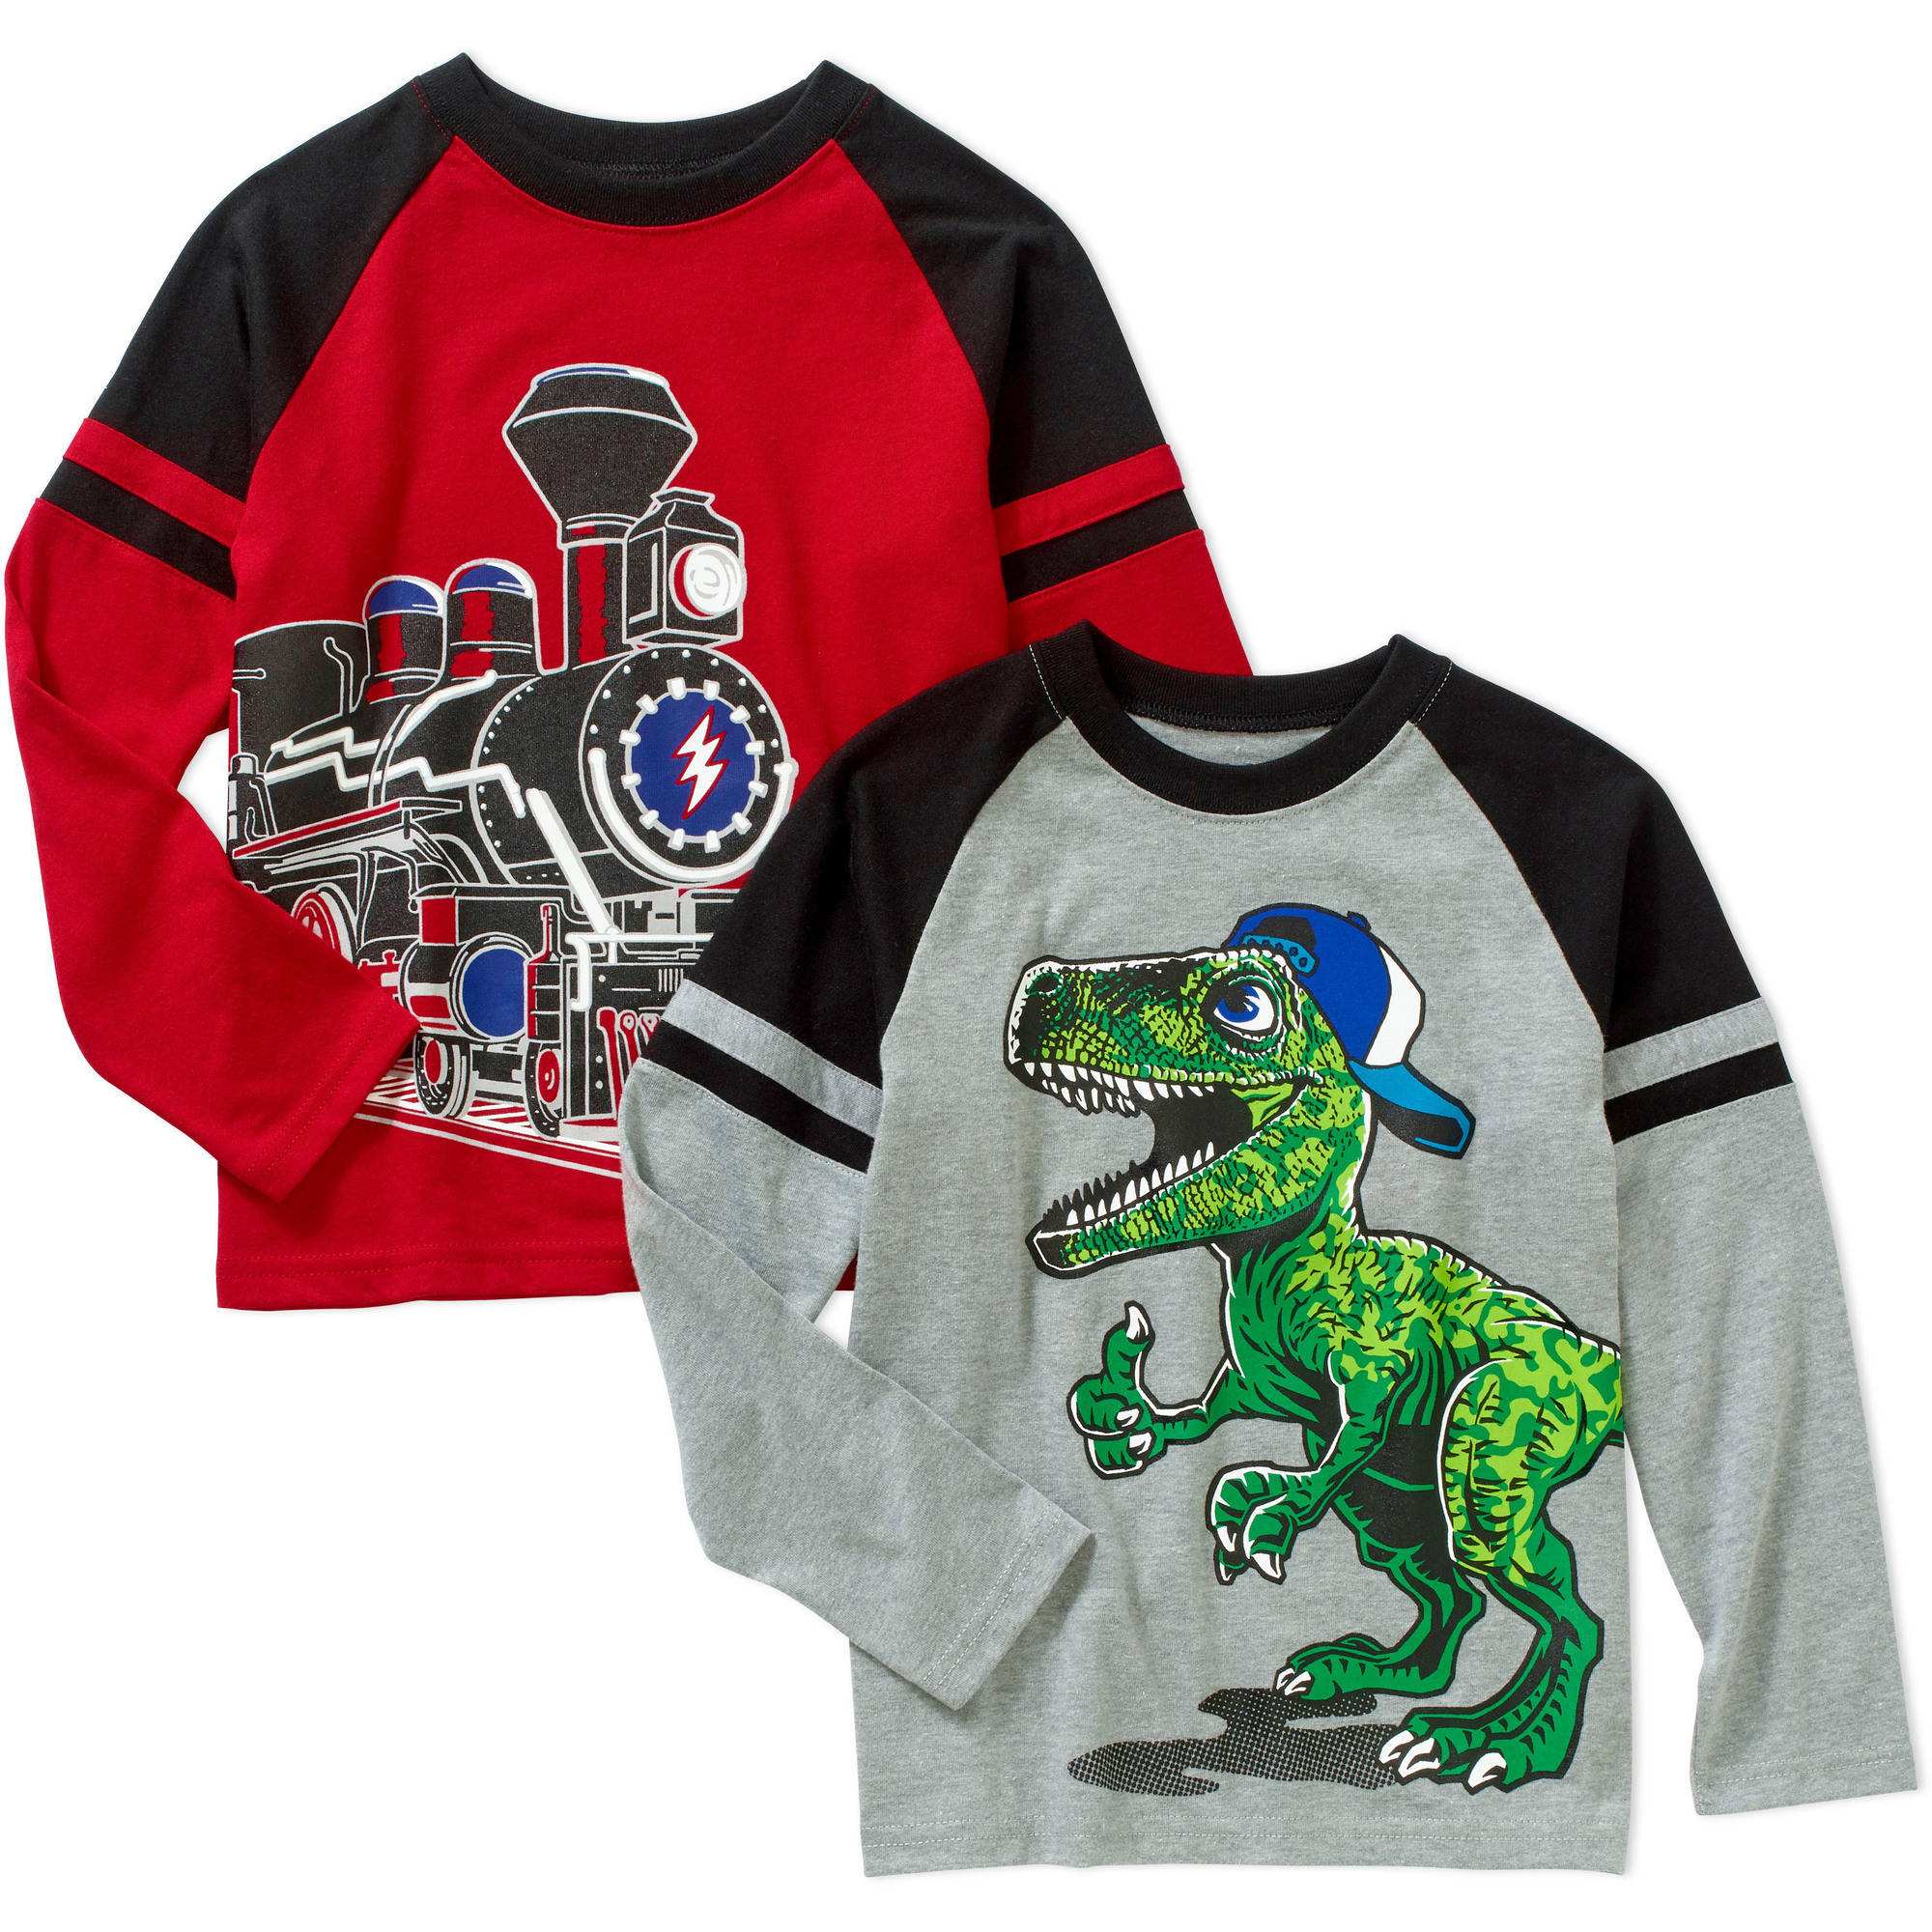 365 Kids from Garanimals Boys' 2-Piece Long Sleeve Graphic Raglan Tee Set